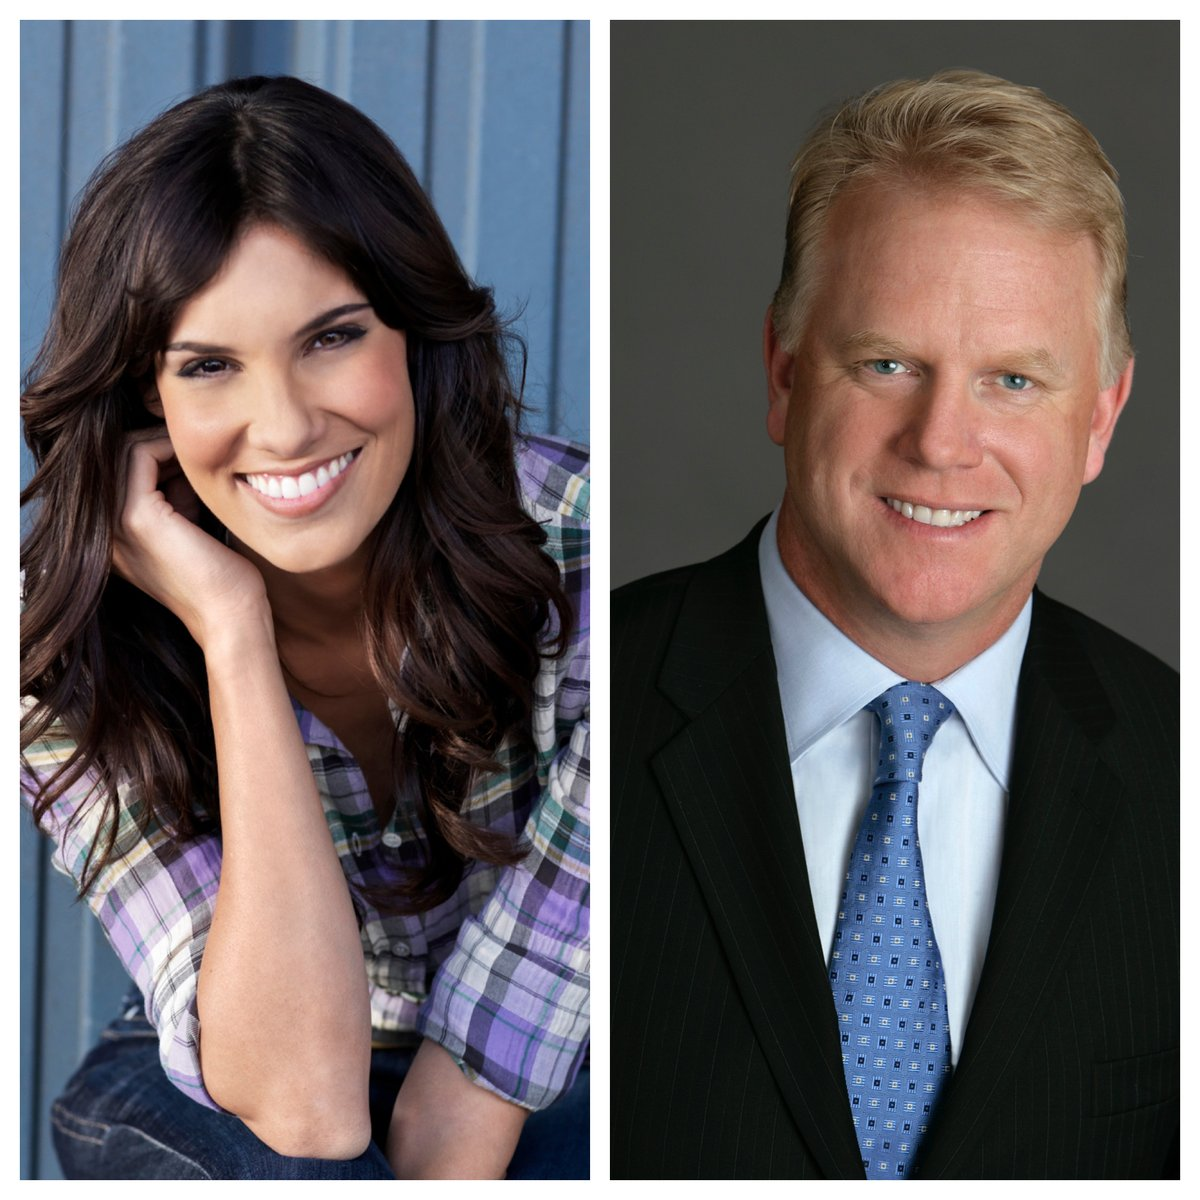 Are you for @DanielaRuah's hilarious commercials or @7BOOMERESIASON's heartfelt commercials? Vote for YOUR faves in the Super Bowl Greatest Commercials 2020 then watch the interactive countdown special LIVE Wednesday 1/29 at 8/7c on CBS and @CBSAllAccess. http://bit.ly/SBGCvote